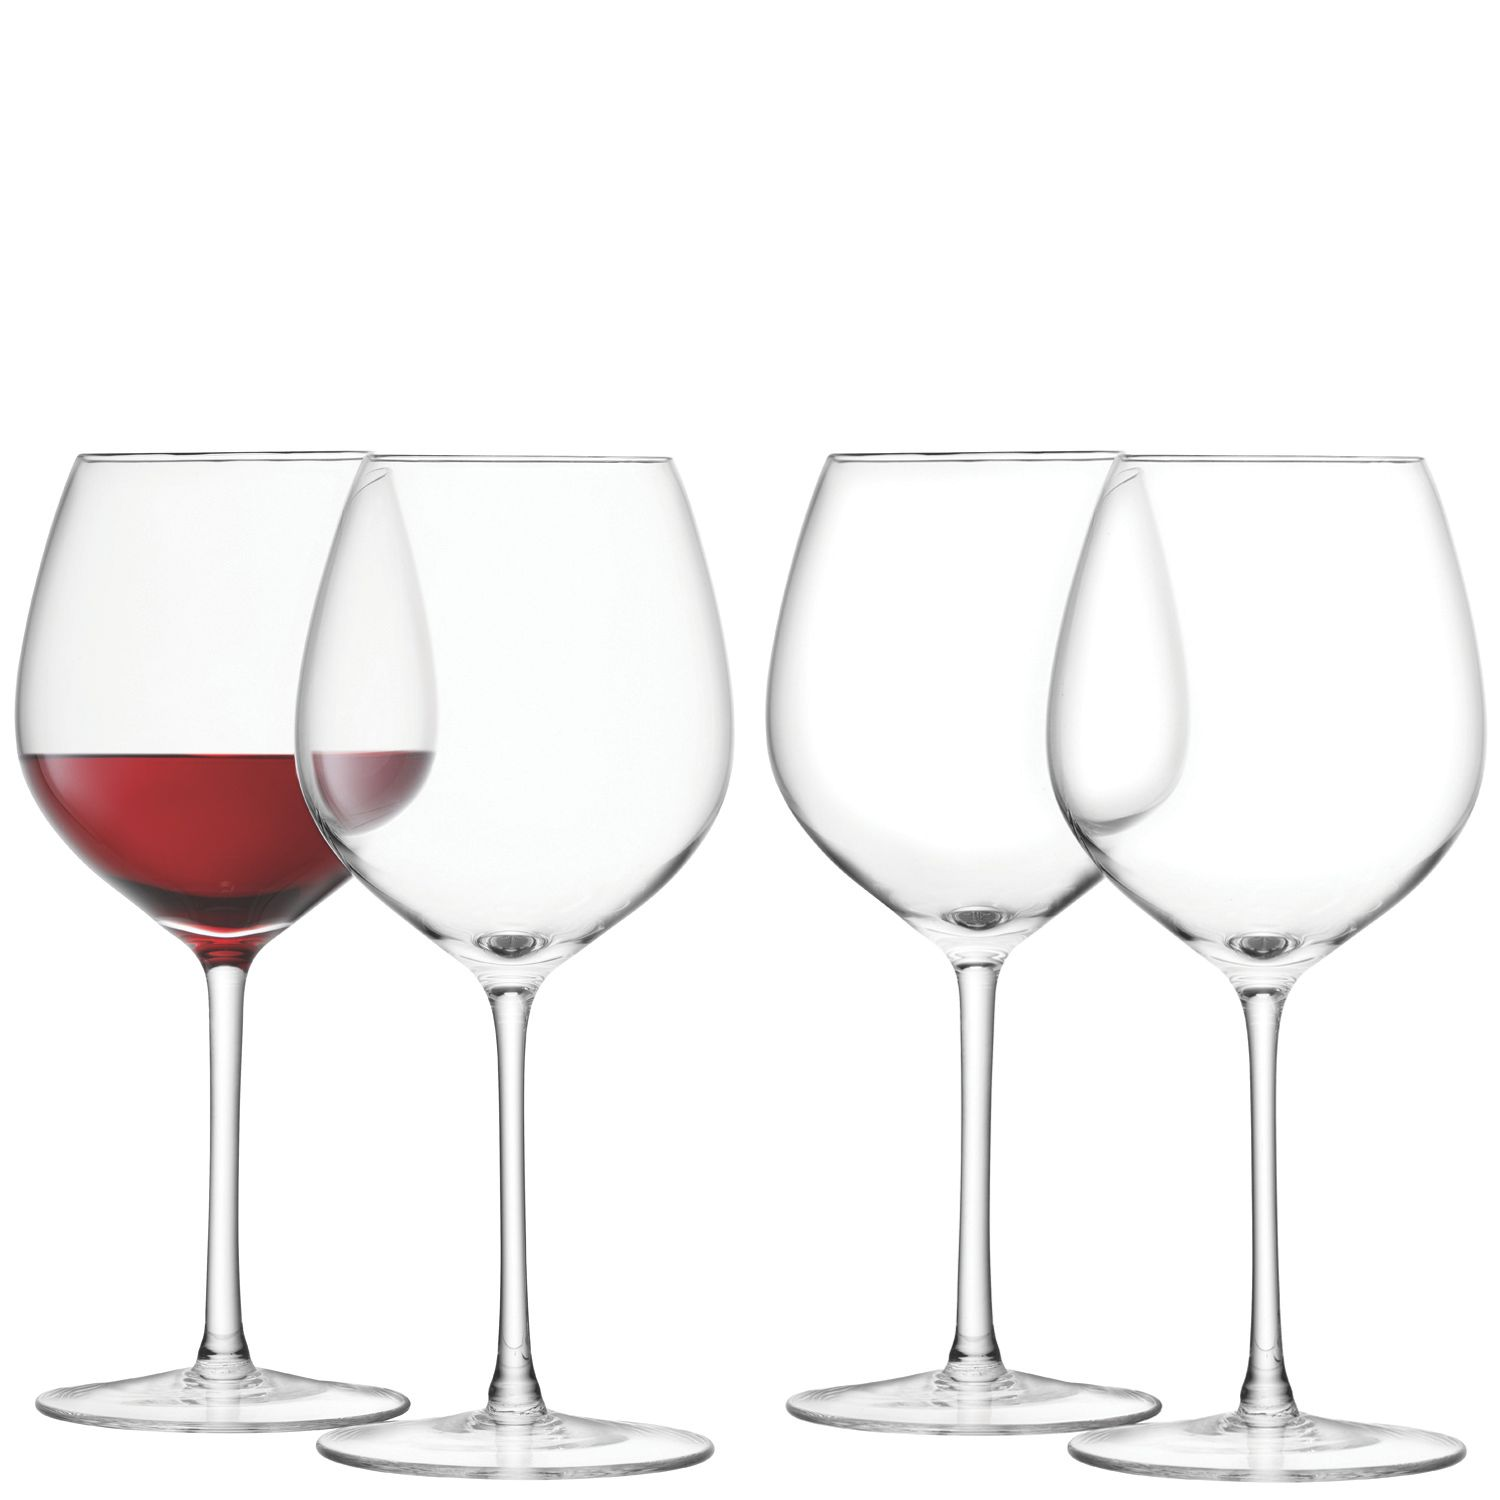 Cheap Wine Glasses Buy Cheap Lsa Glasses Compare Glassware Prices For Best